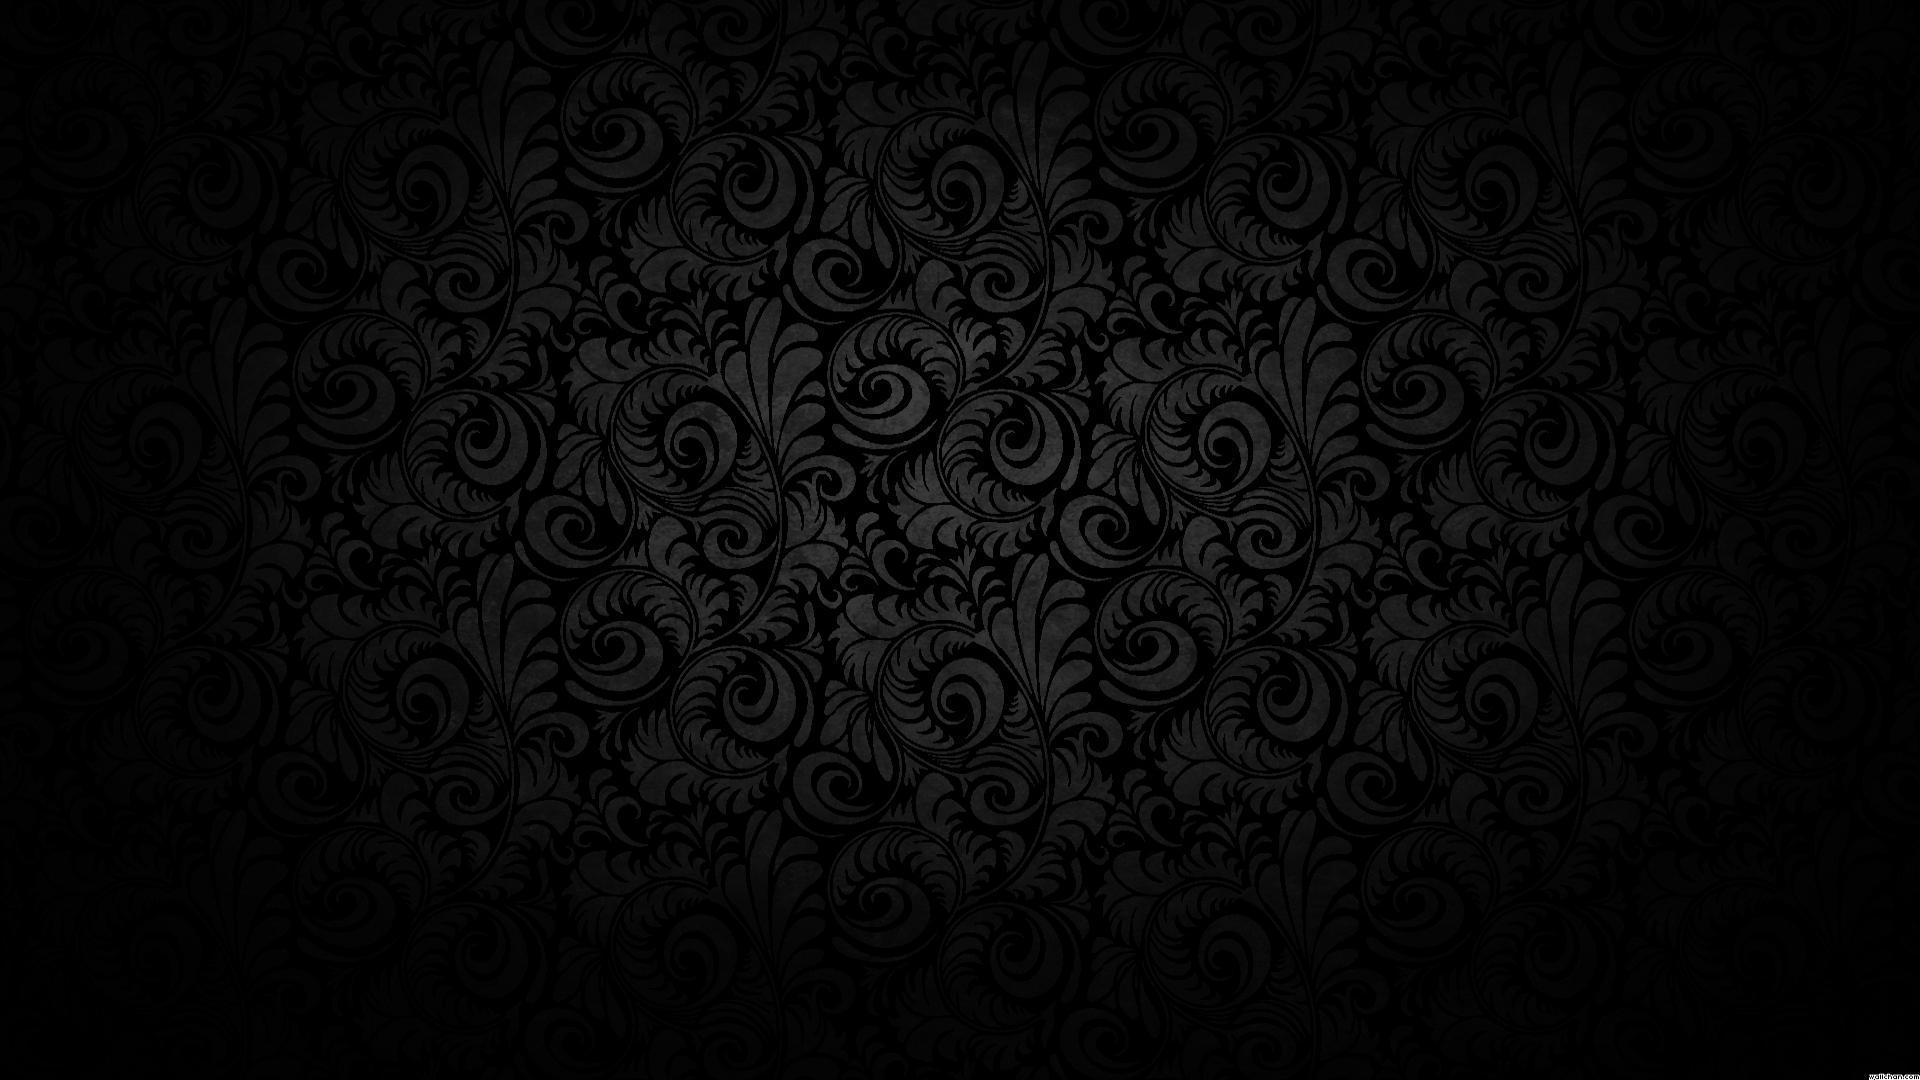 Black Wallpapers 1920x1080 Design Ideas ~ Black Wallpapers